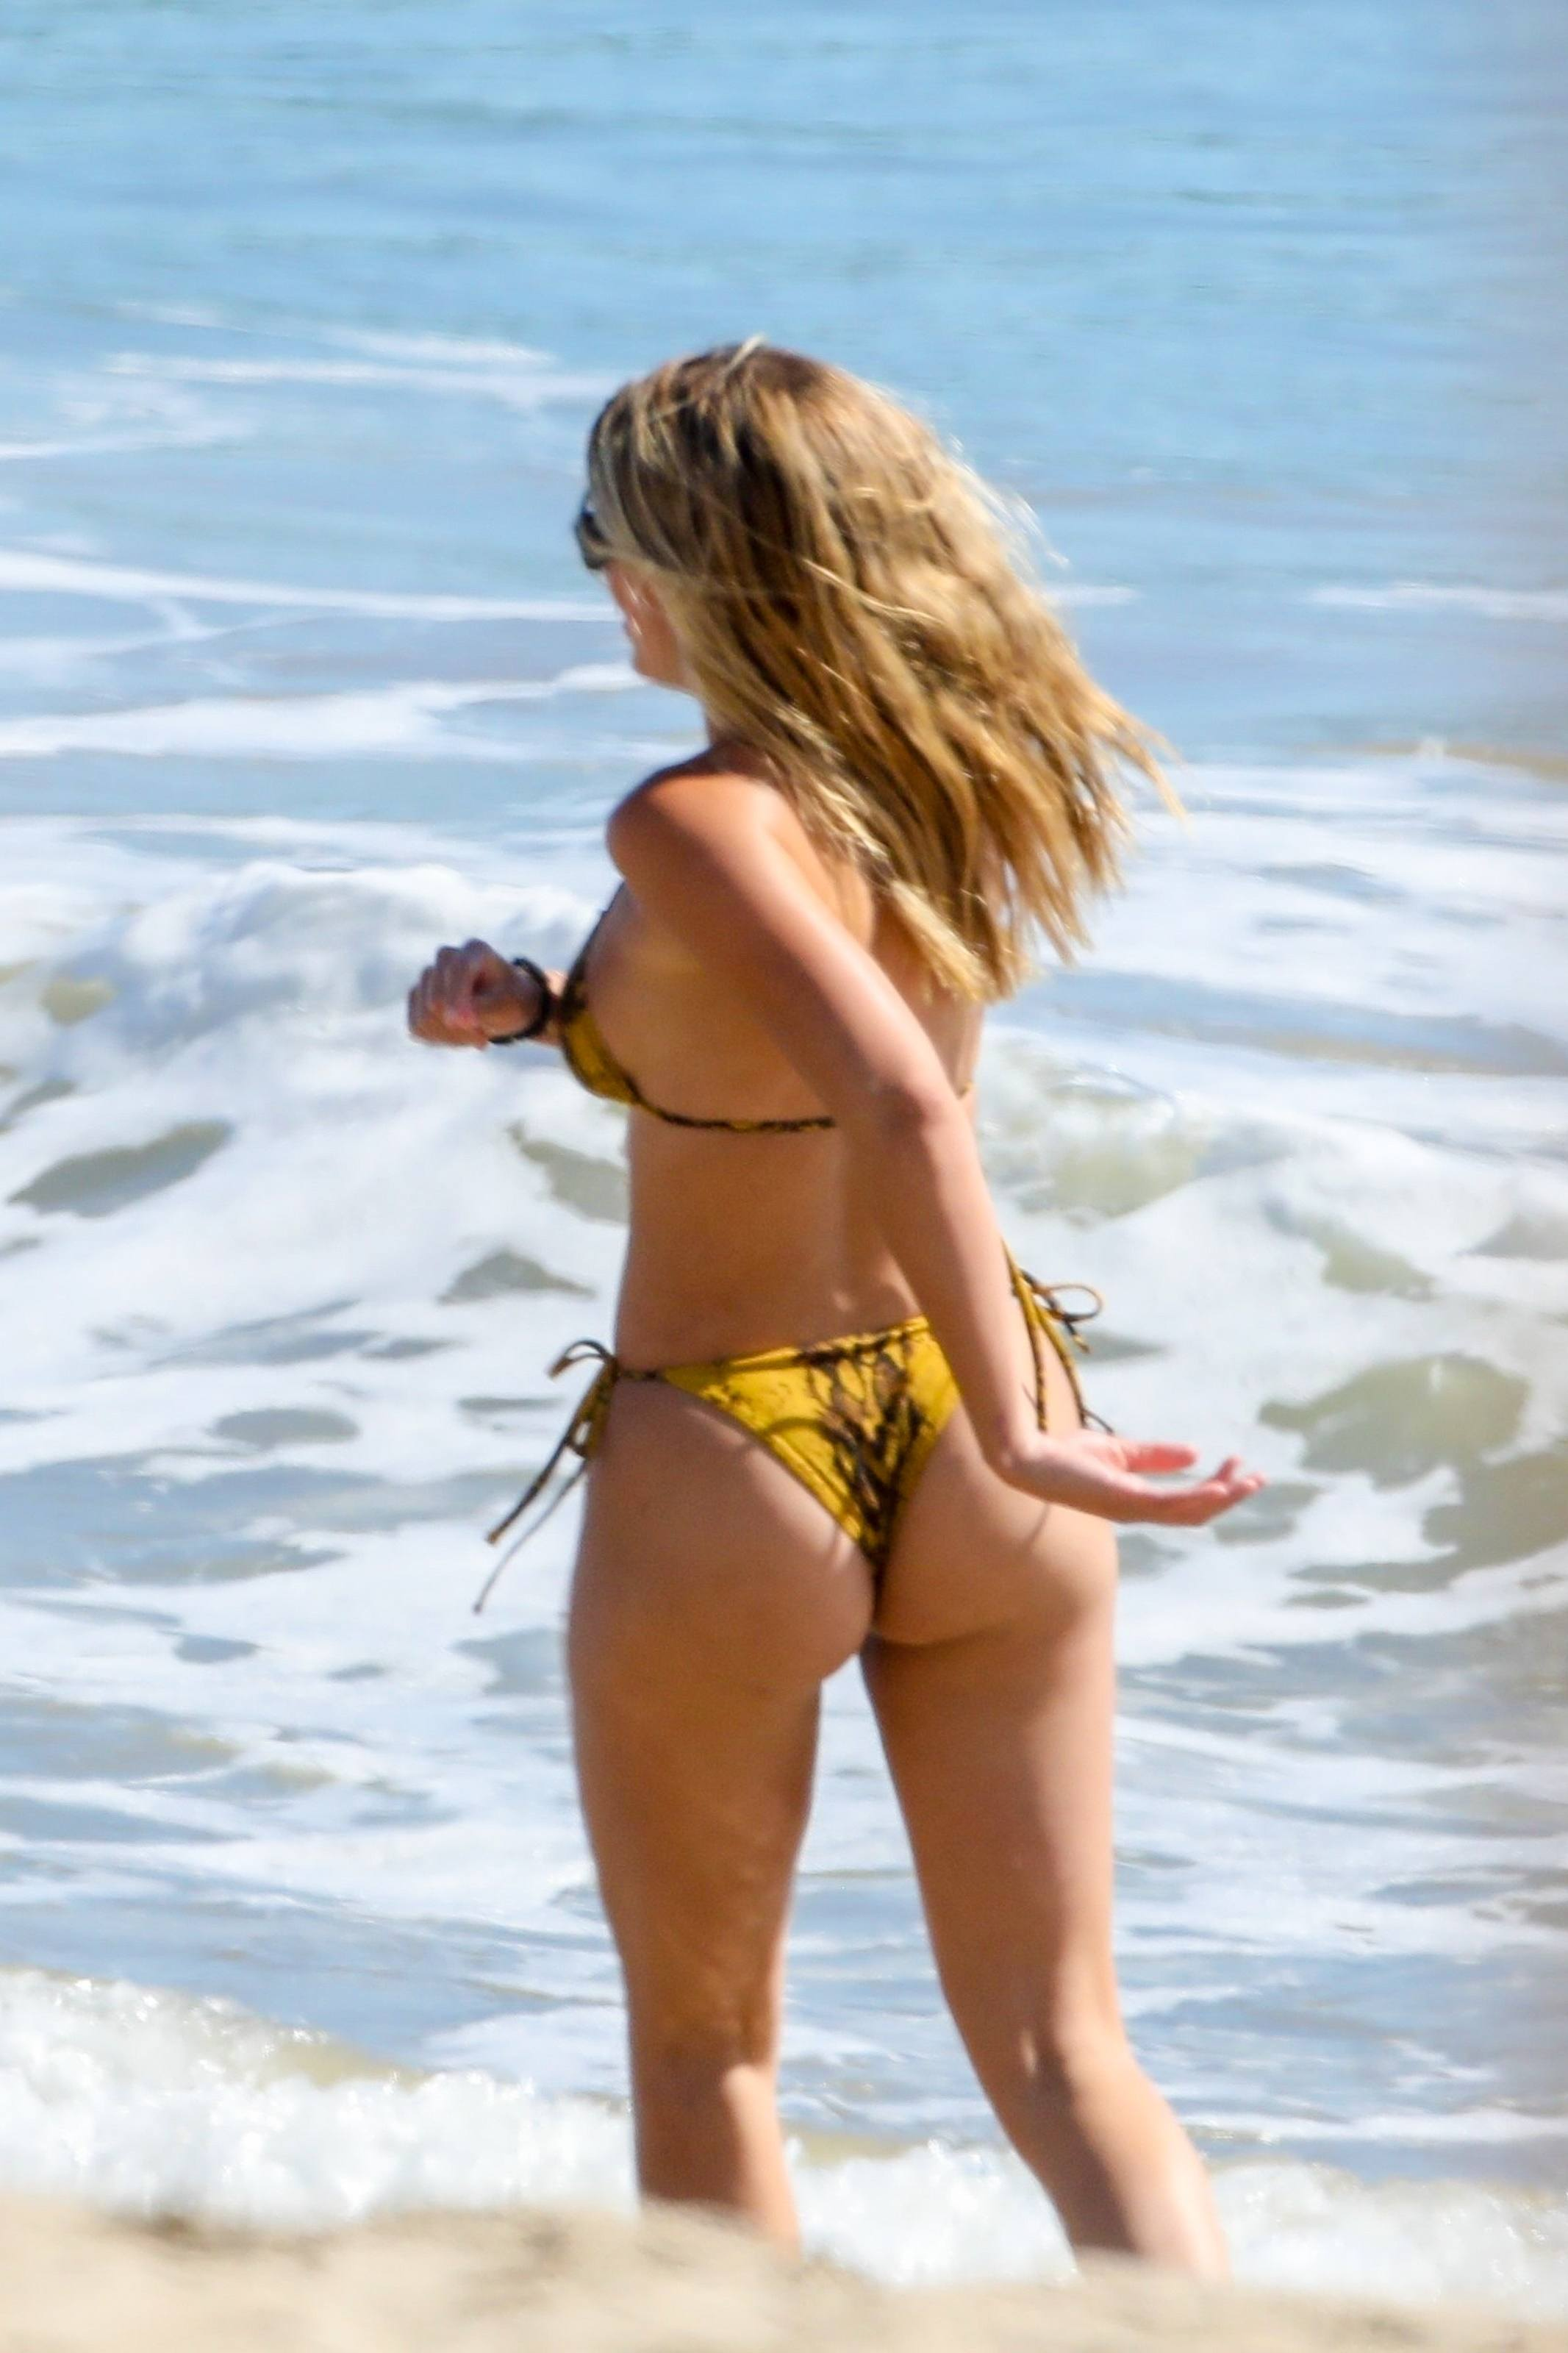 Sofia Richie Ass in Bikini on a Beach in Malibu